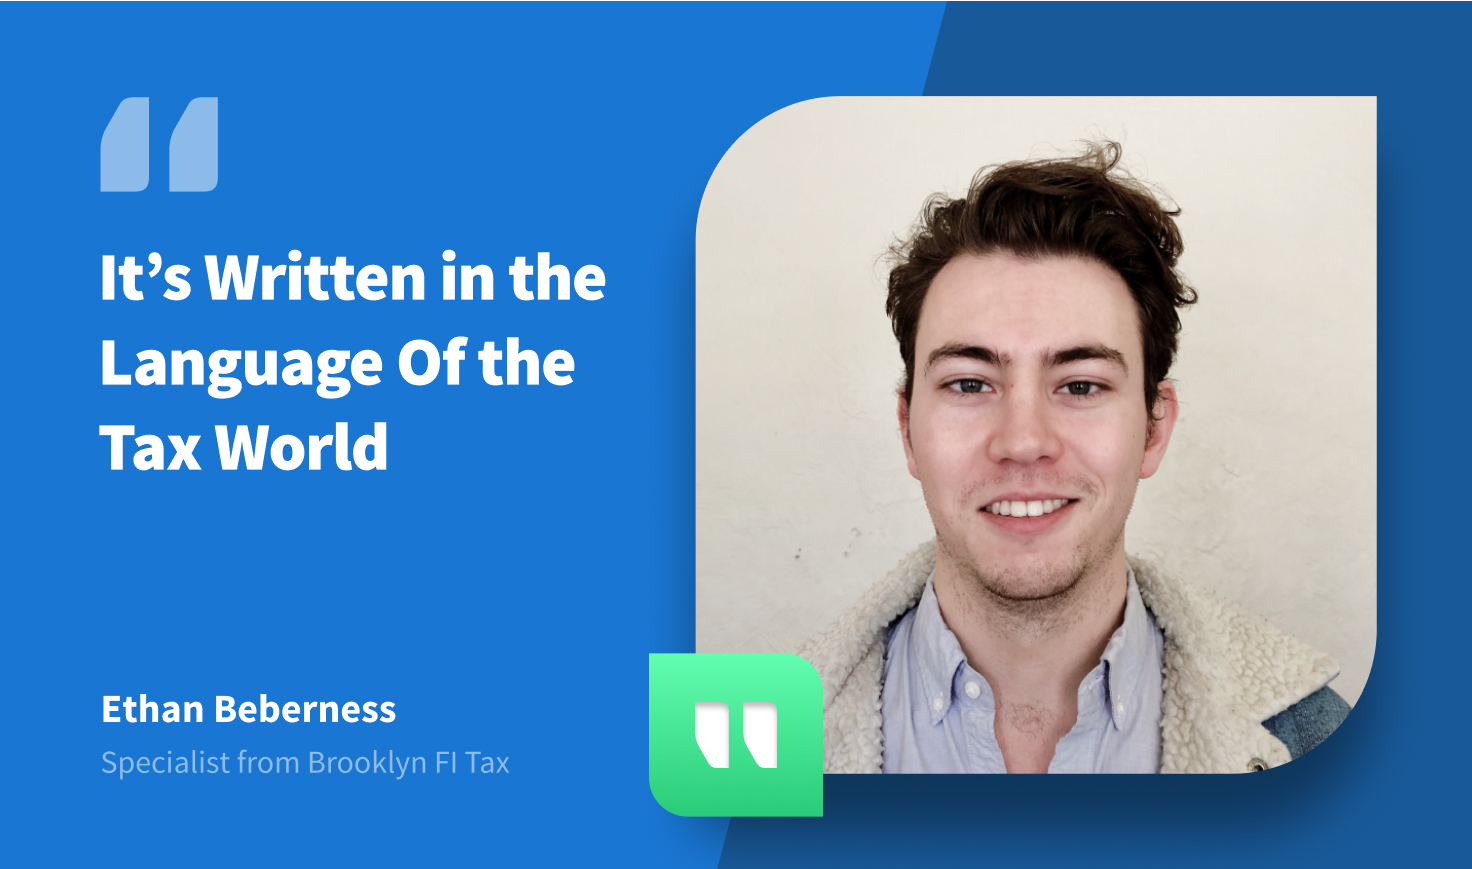 CPA Firm Brooklyn FI Tax on TaxDome: 'It's Written in the Language Of the Tax World'